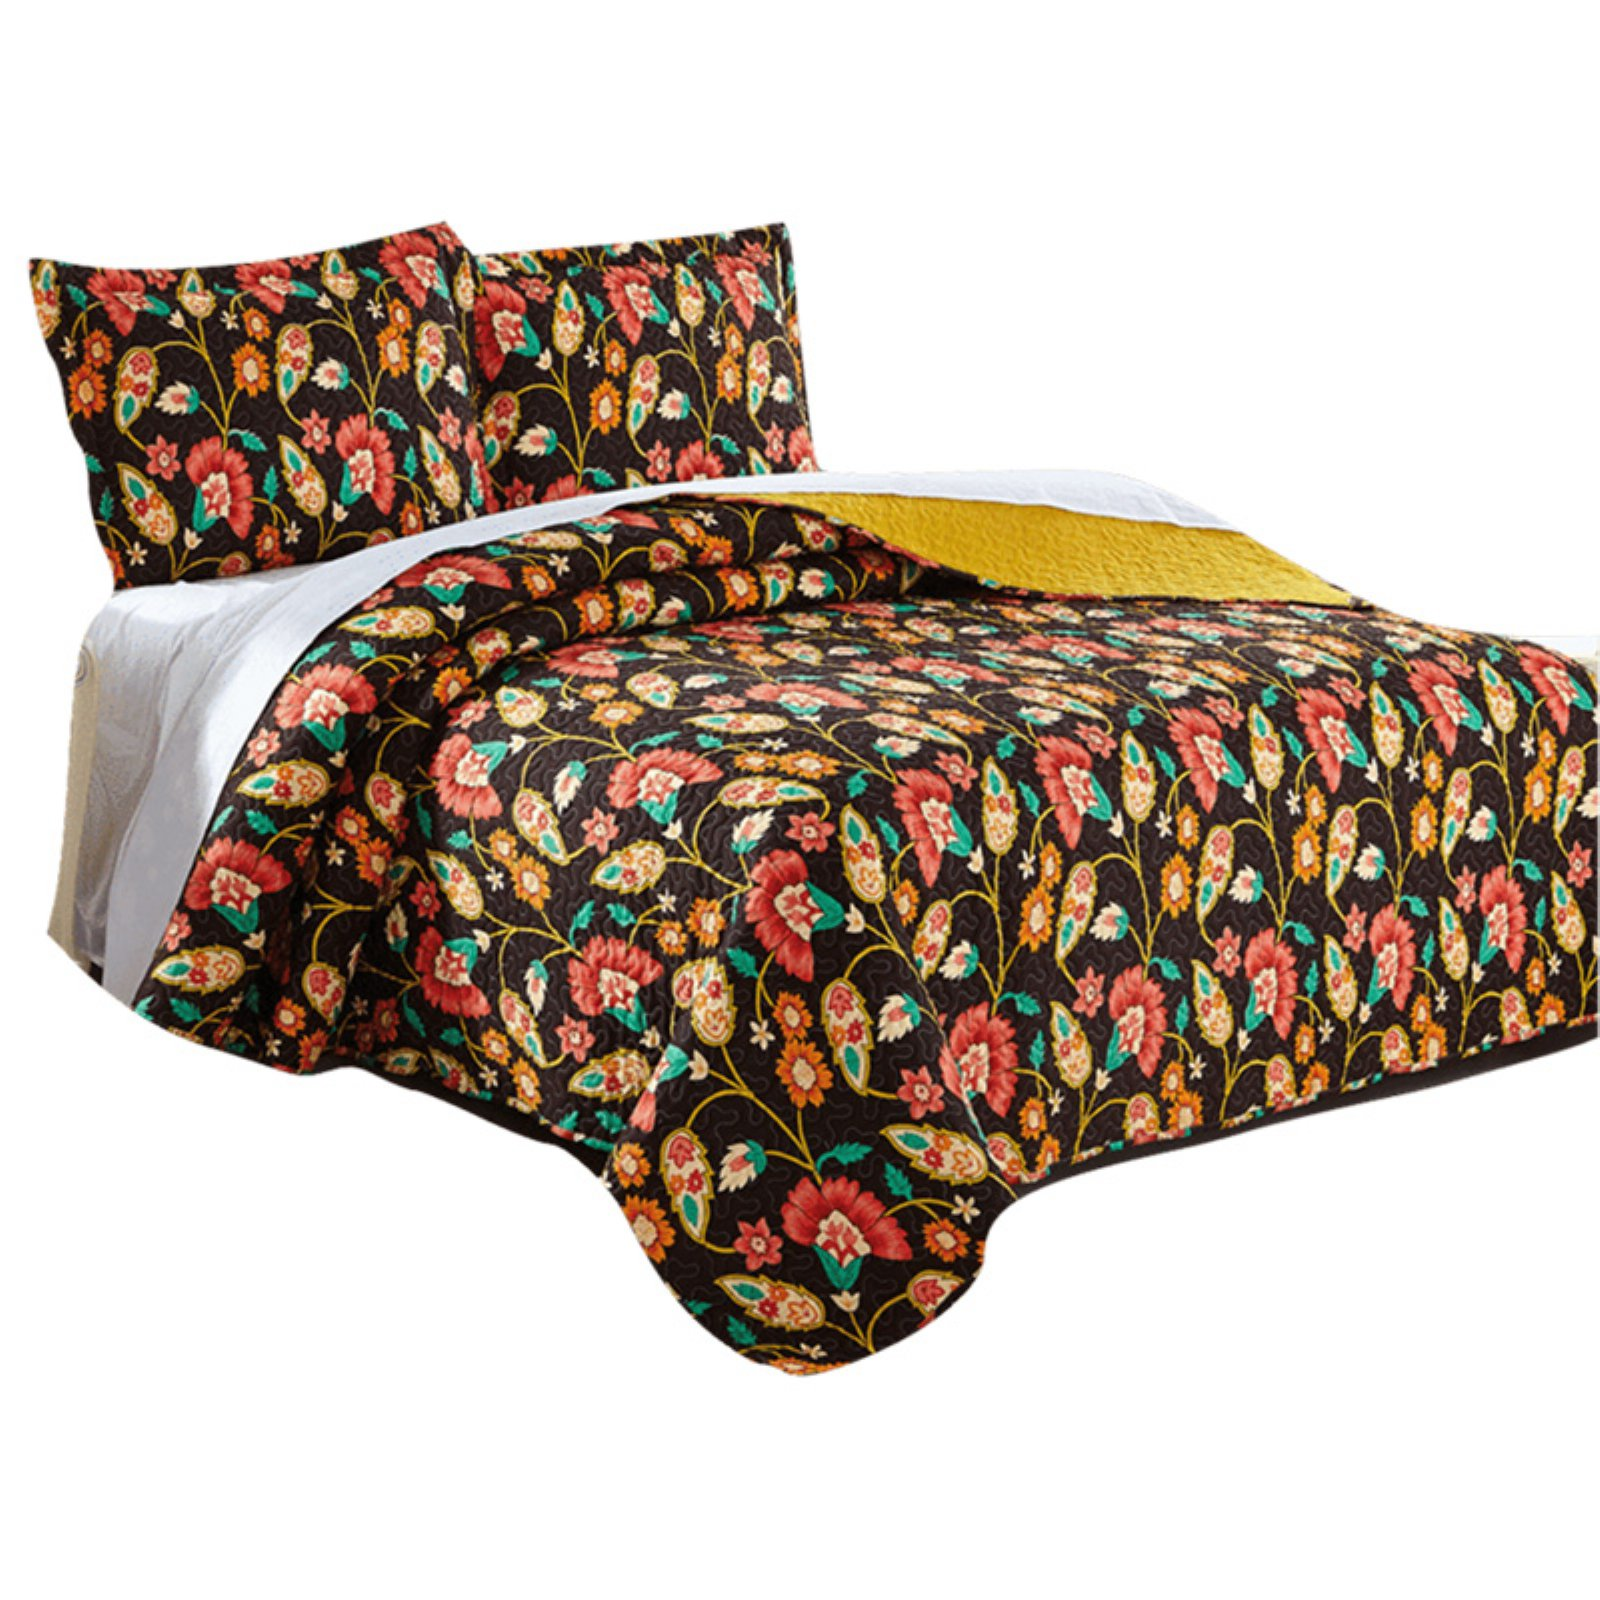 Marigolds Quilted Bedspread Set by DaDa Bedding Collection